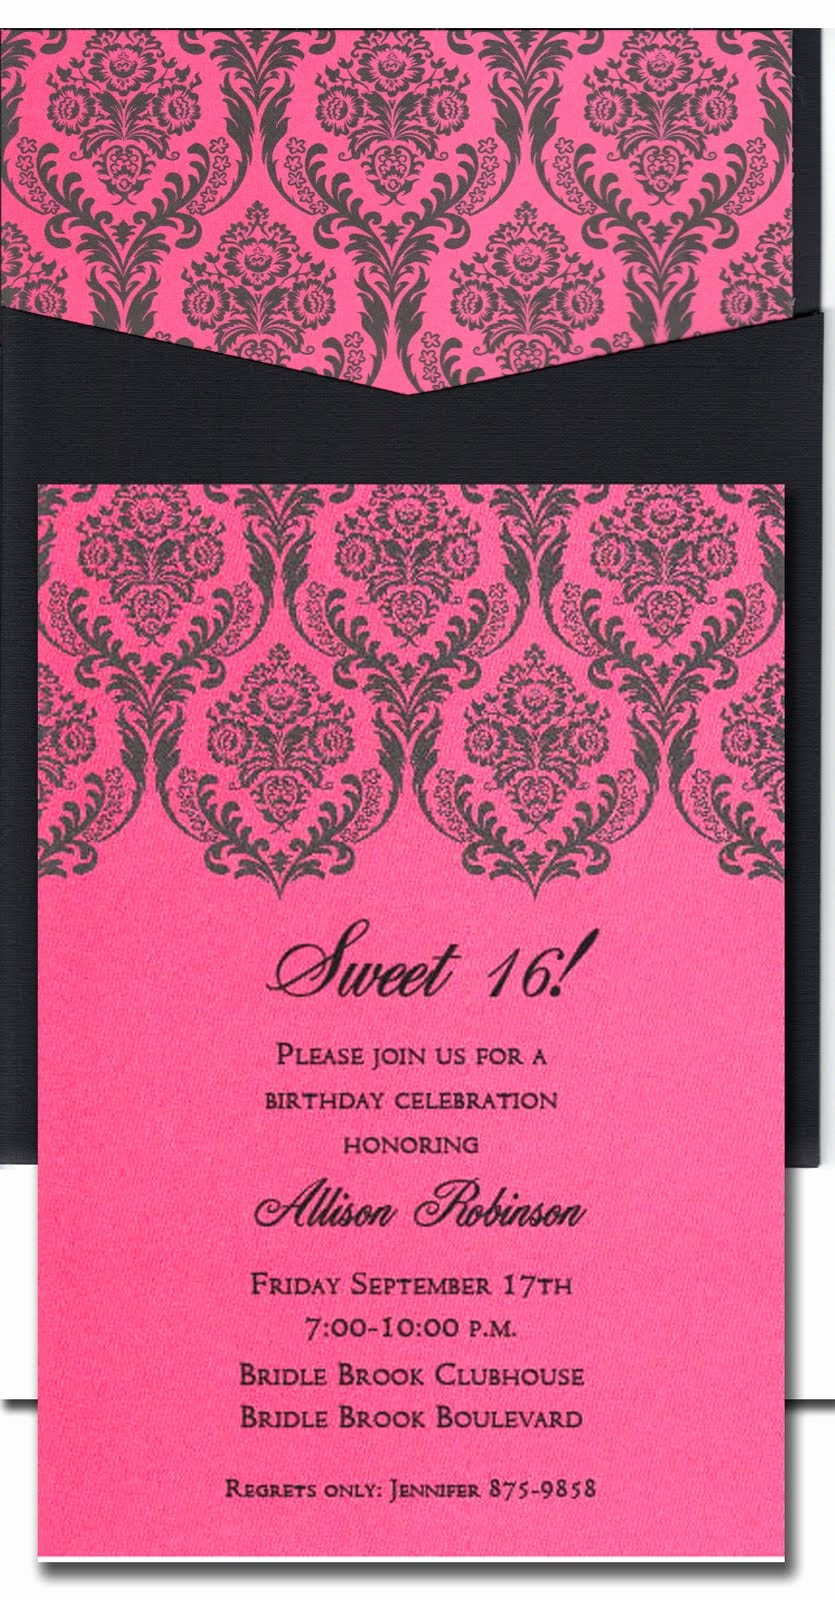 Sweet Sixteen Invitation Templates Lovely Sweet Sixteen Invitation Wording